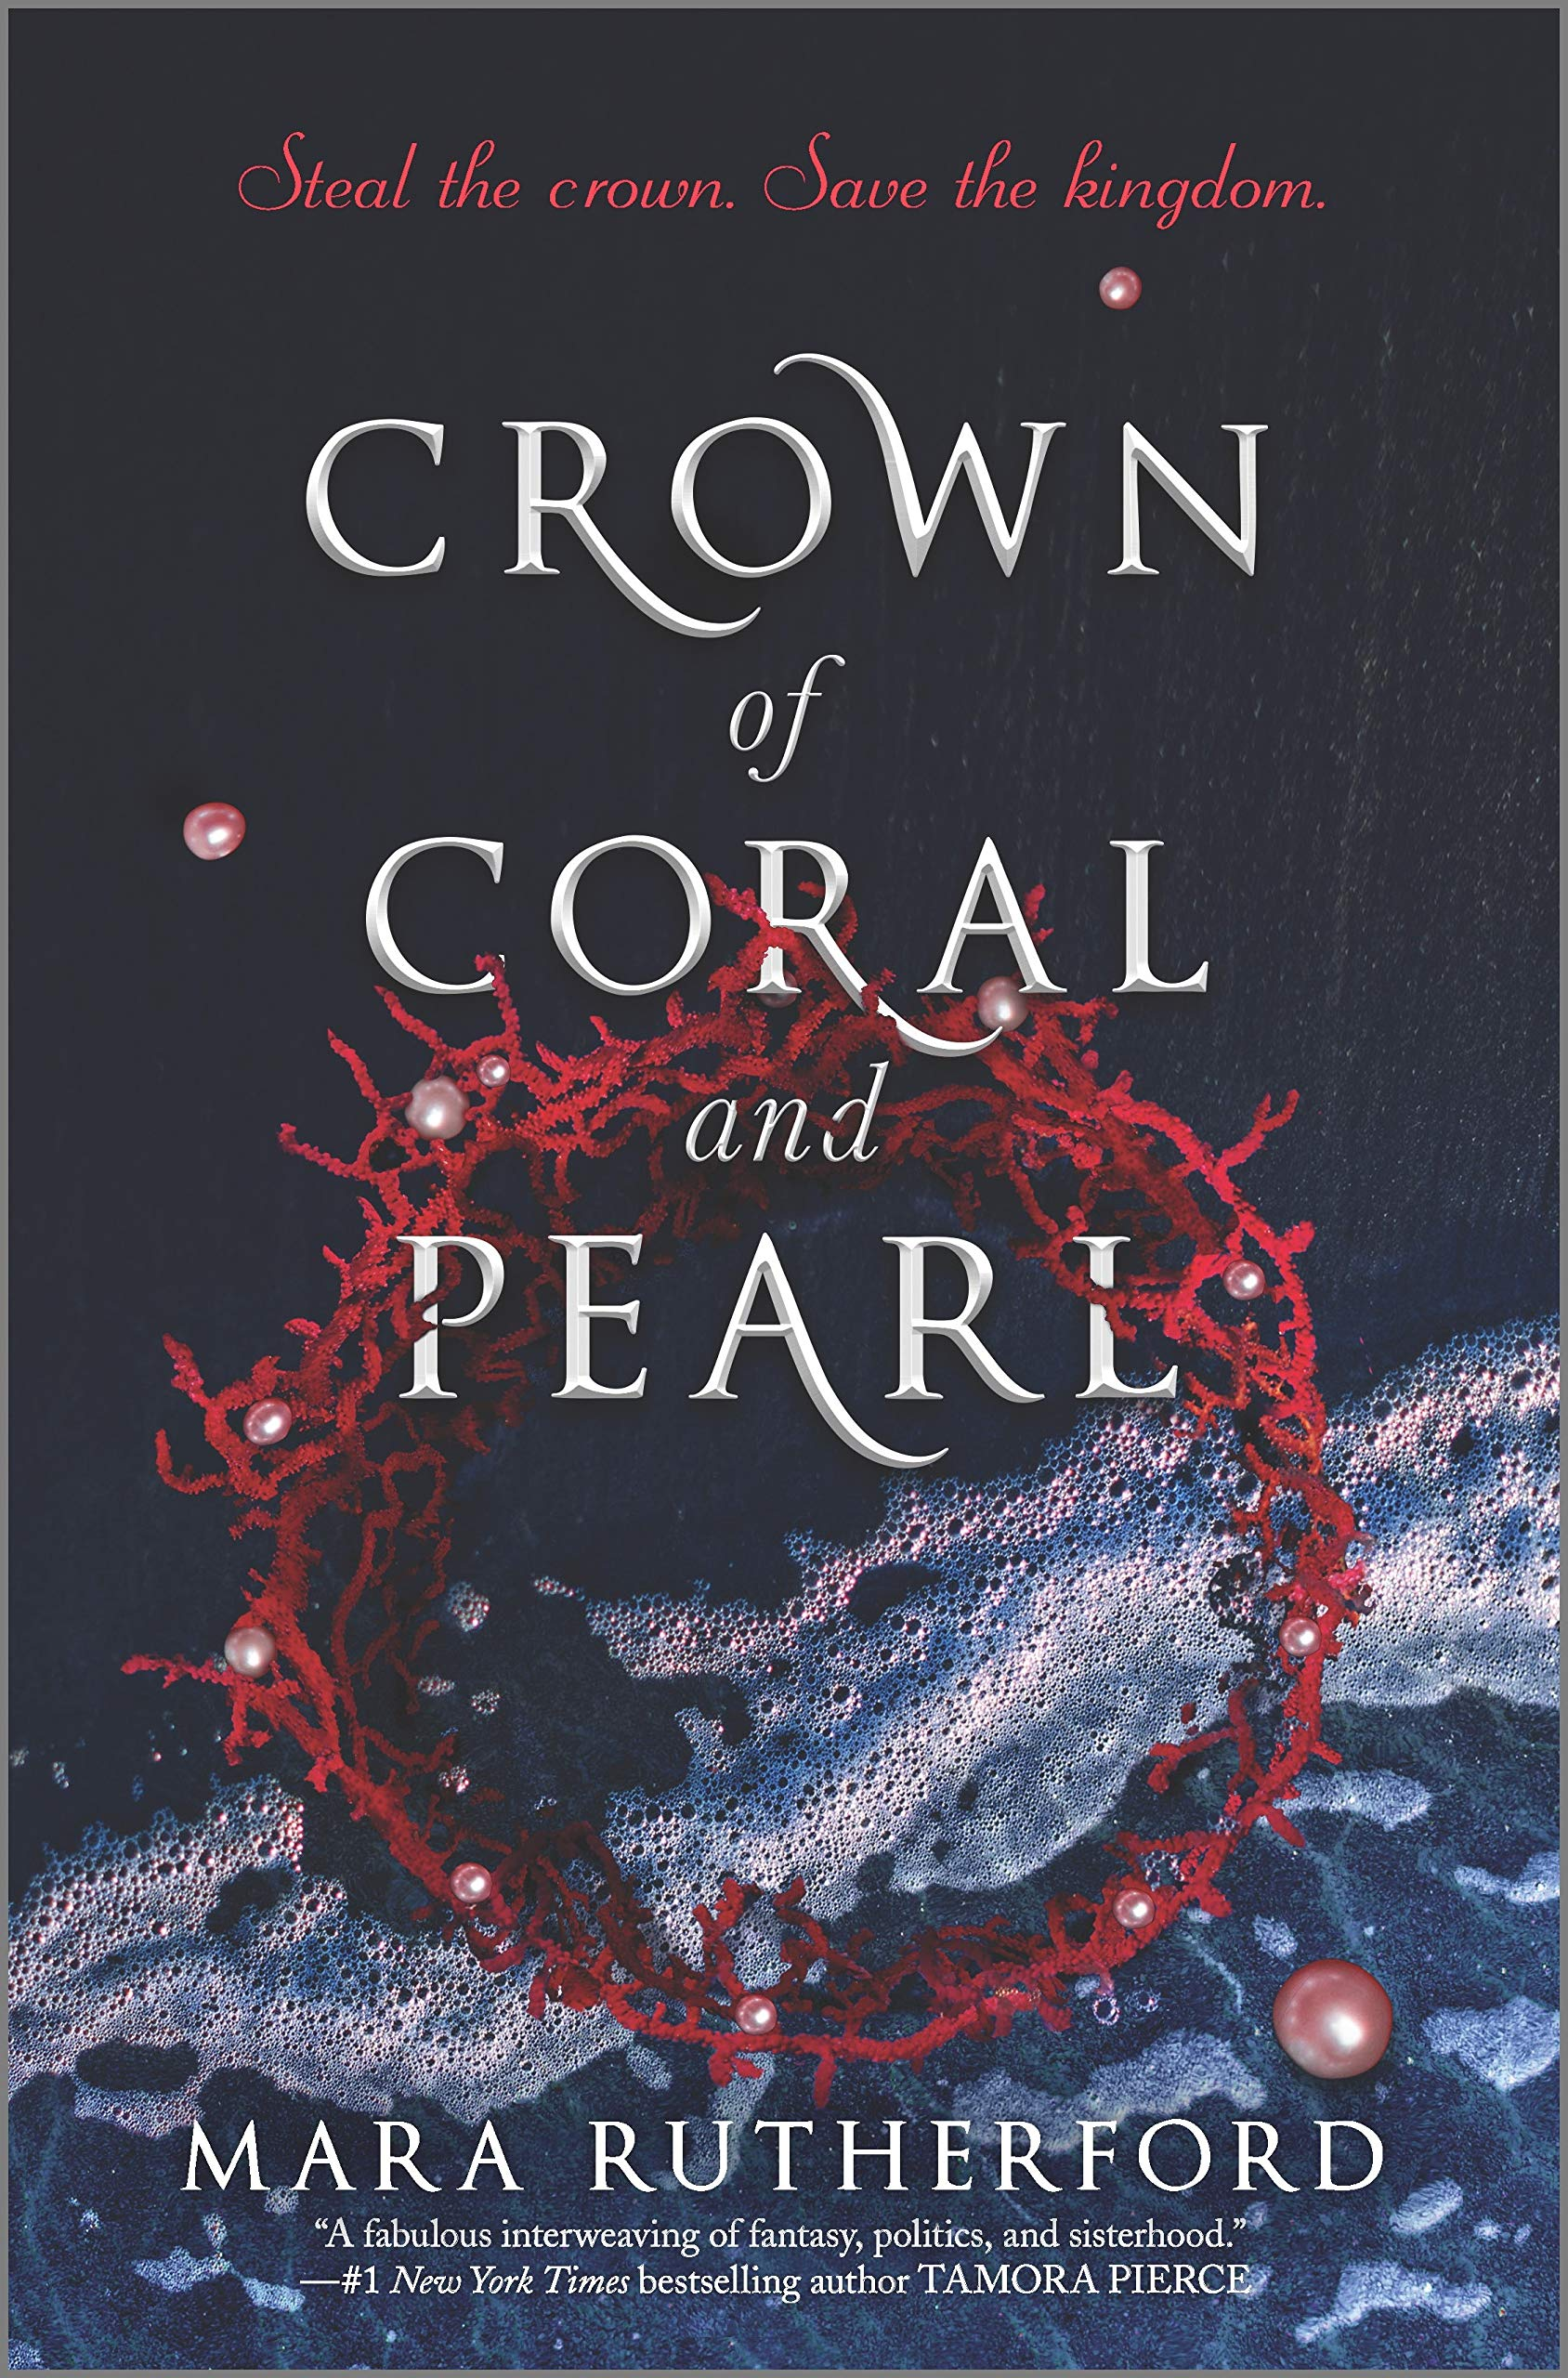 Amazon.com: Crown of Coral and Pearl (Crown of Coral and Pearl series, 1):  Rutherford, Mara: Books